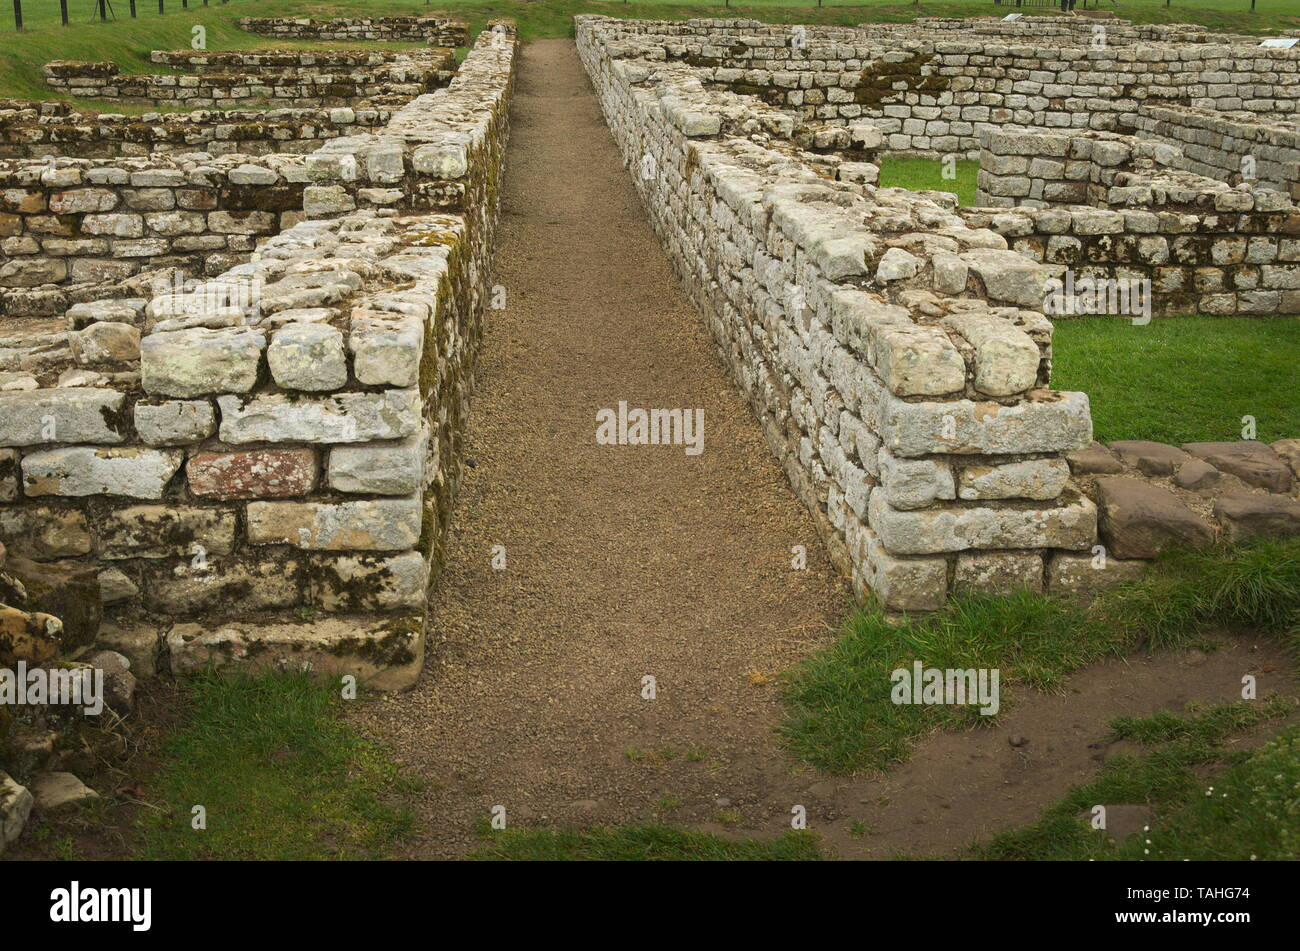 Foundation of the Chesters roman site, National trust - Stock Image